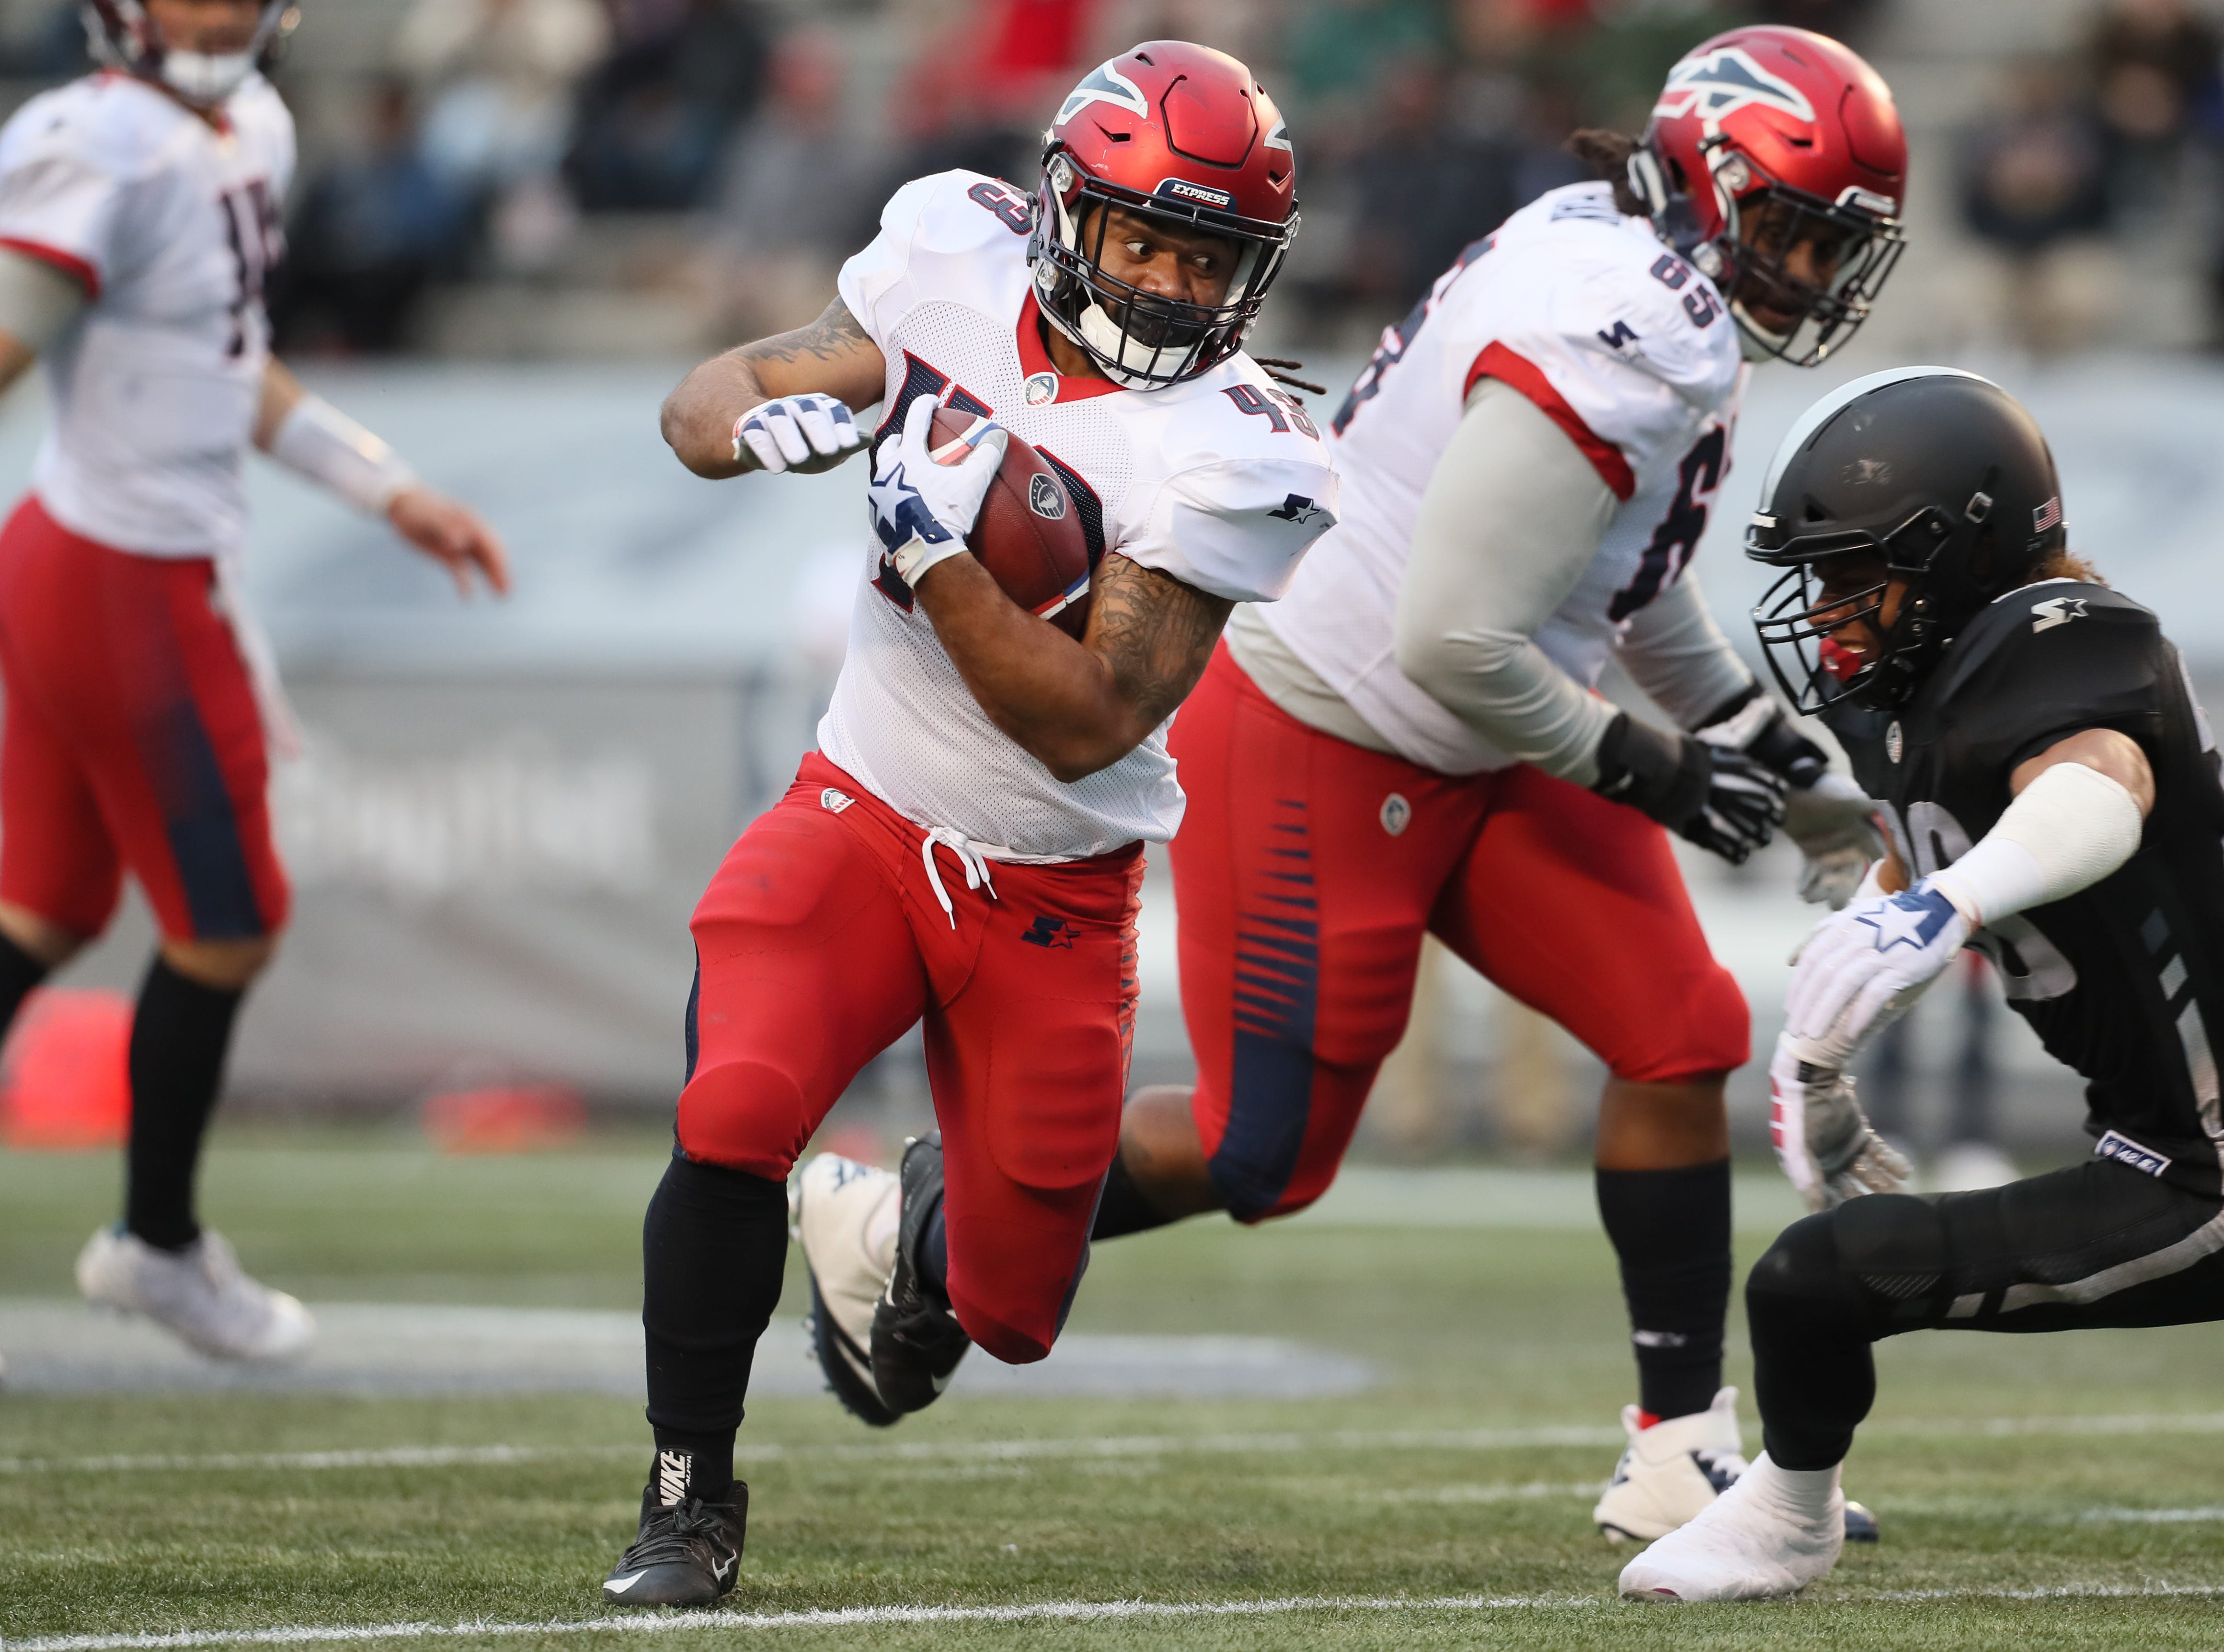 Memphis Express runningback Terrence Magee finds a hole against the Birmingham Iron during their game at Legion Field in Birmingham, Ala. on Sunday, Feb. 10, 2019.